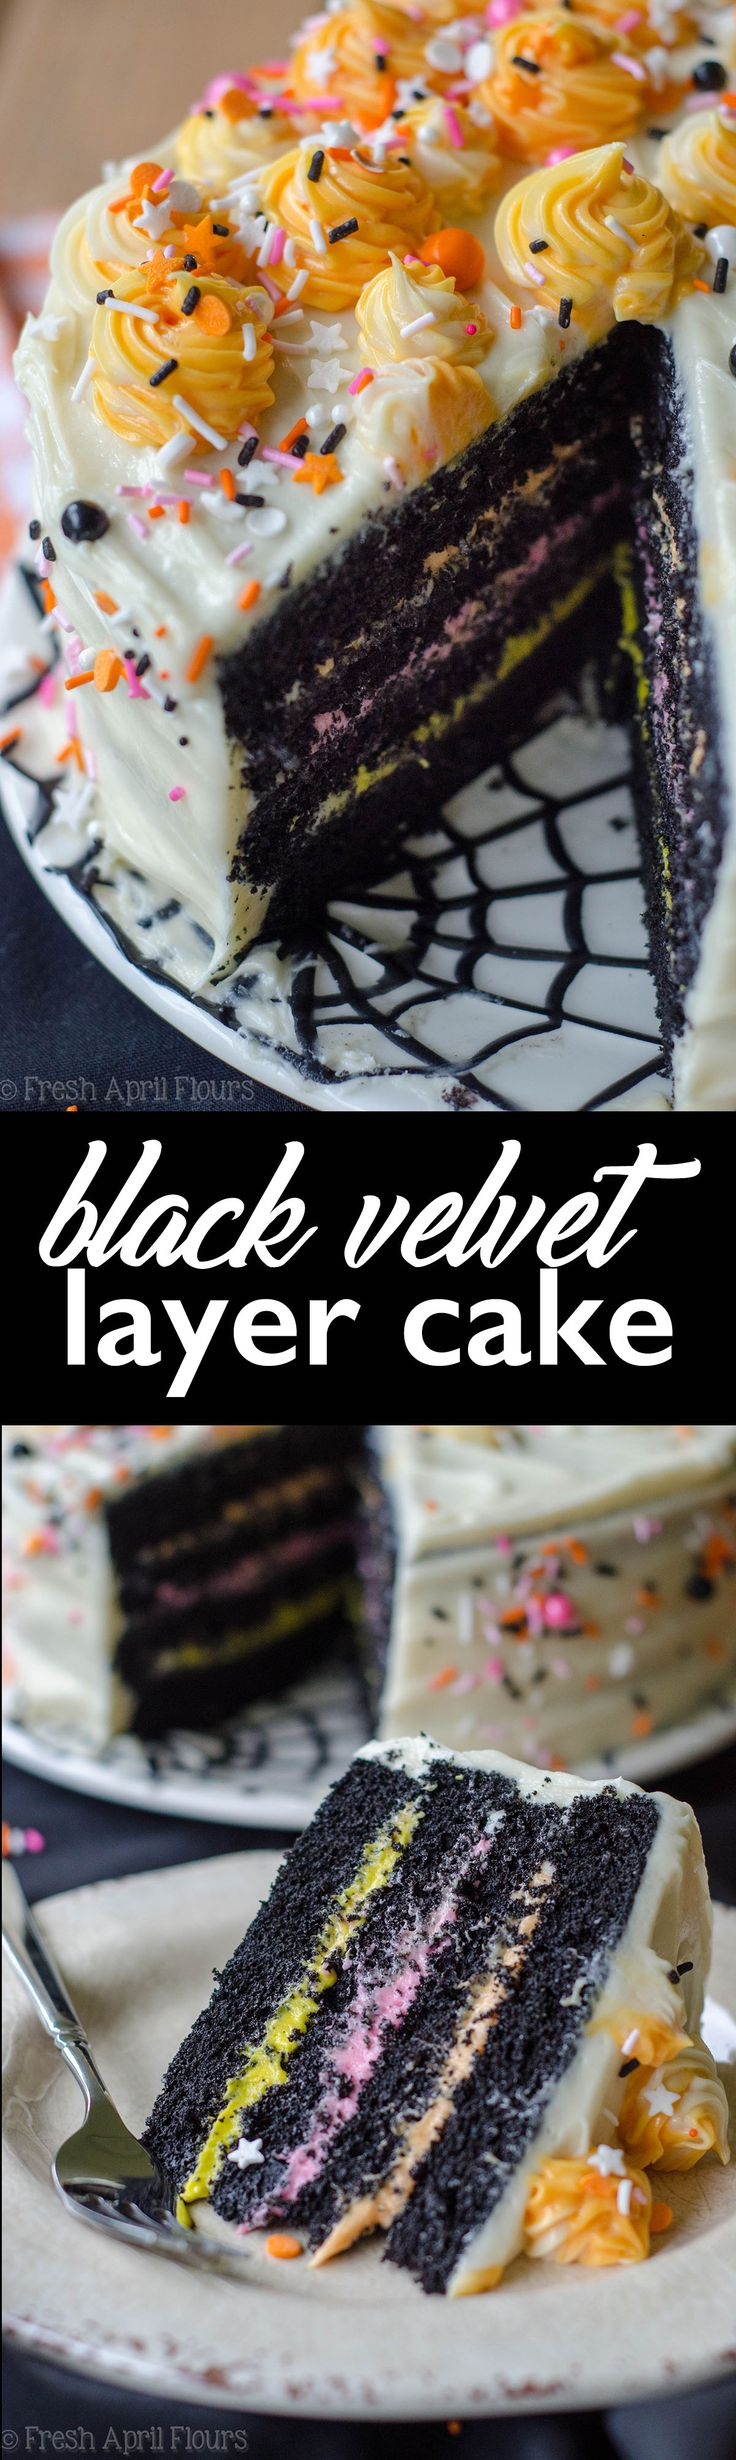 Black Velvet Layer Cake: Classic red velvet cake gets a spooky makeover in this black velvet edition perfect for Halloween! via @frshaprilflours